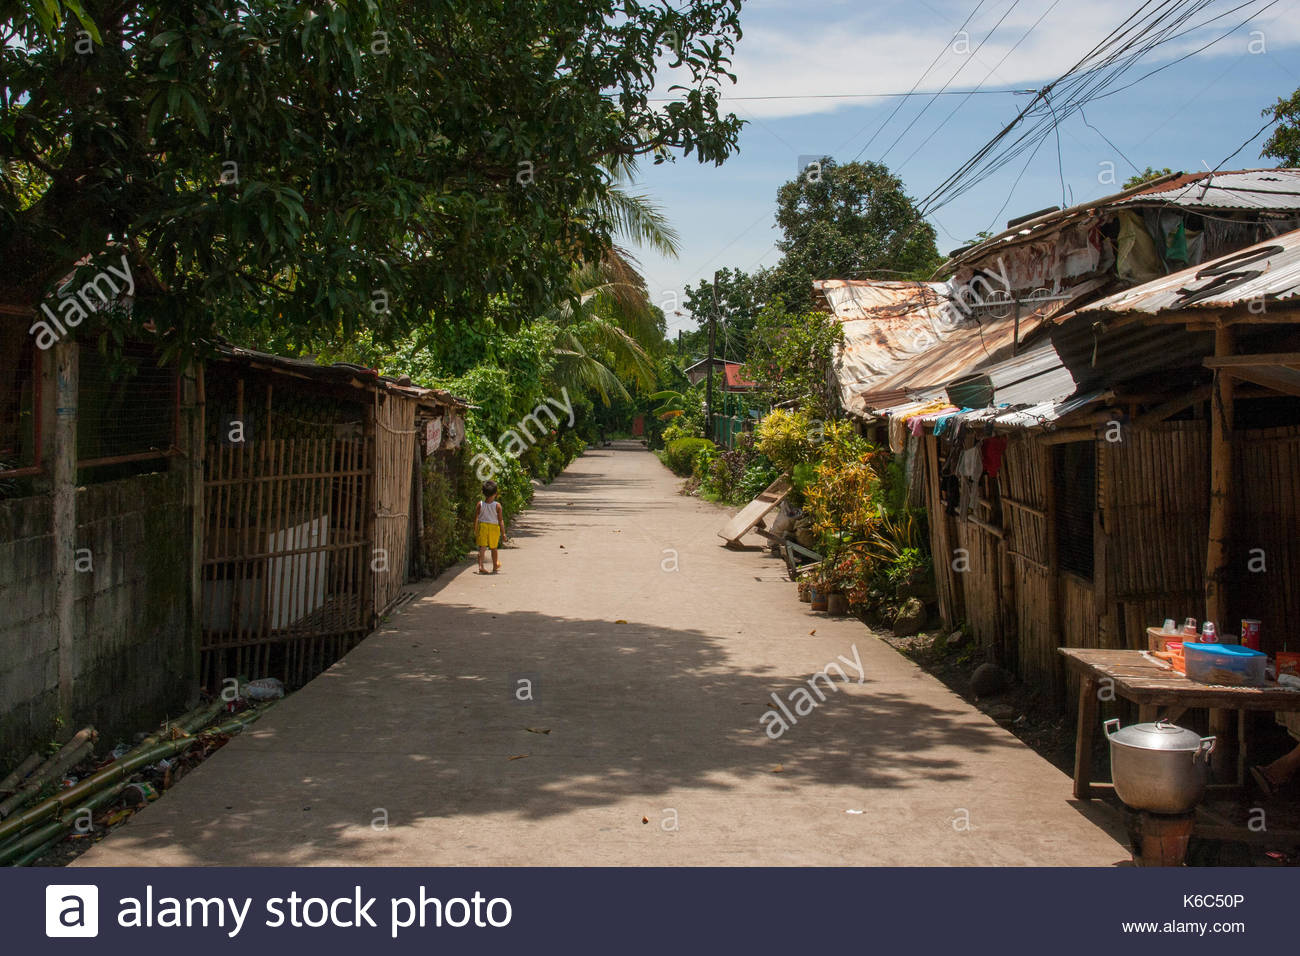 A countryside unpaved road in the suburbs of Bacolod - Stock Image